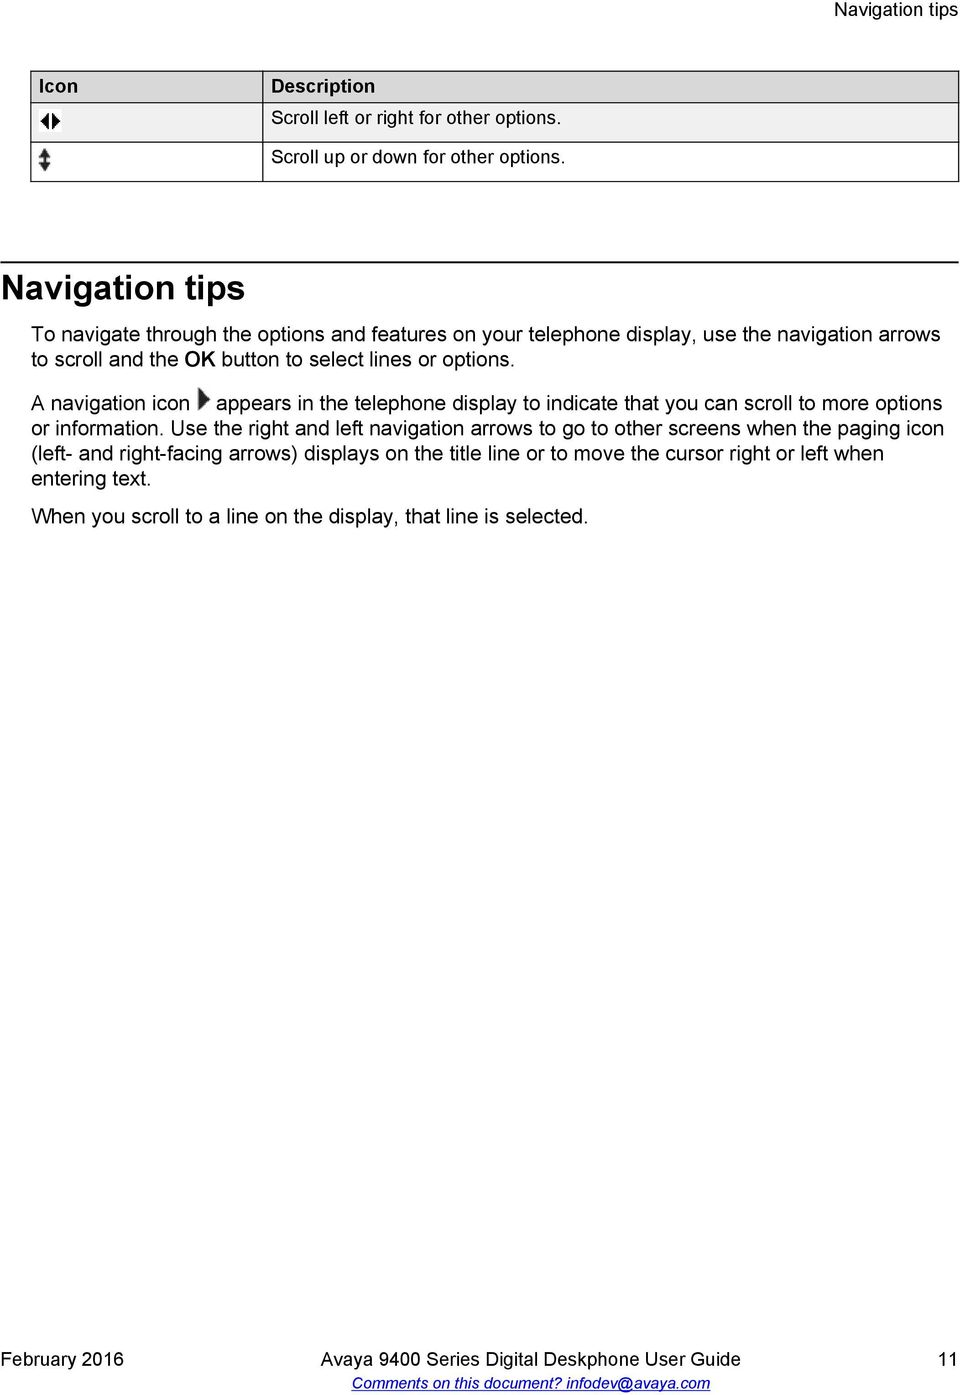 A navigation icon appears in the telephone display to indicate that you can scroll to more options or information.